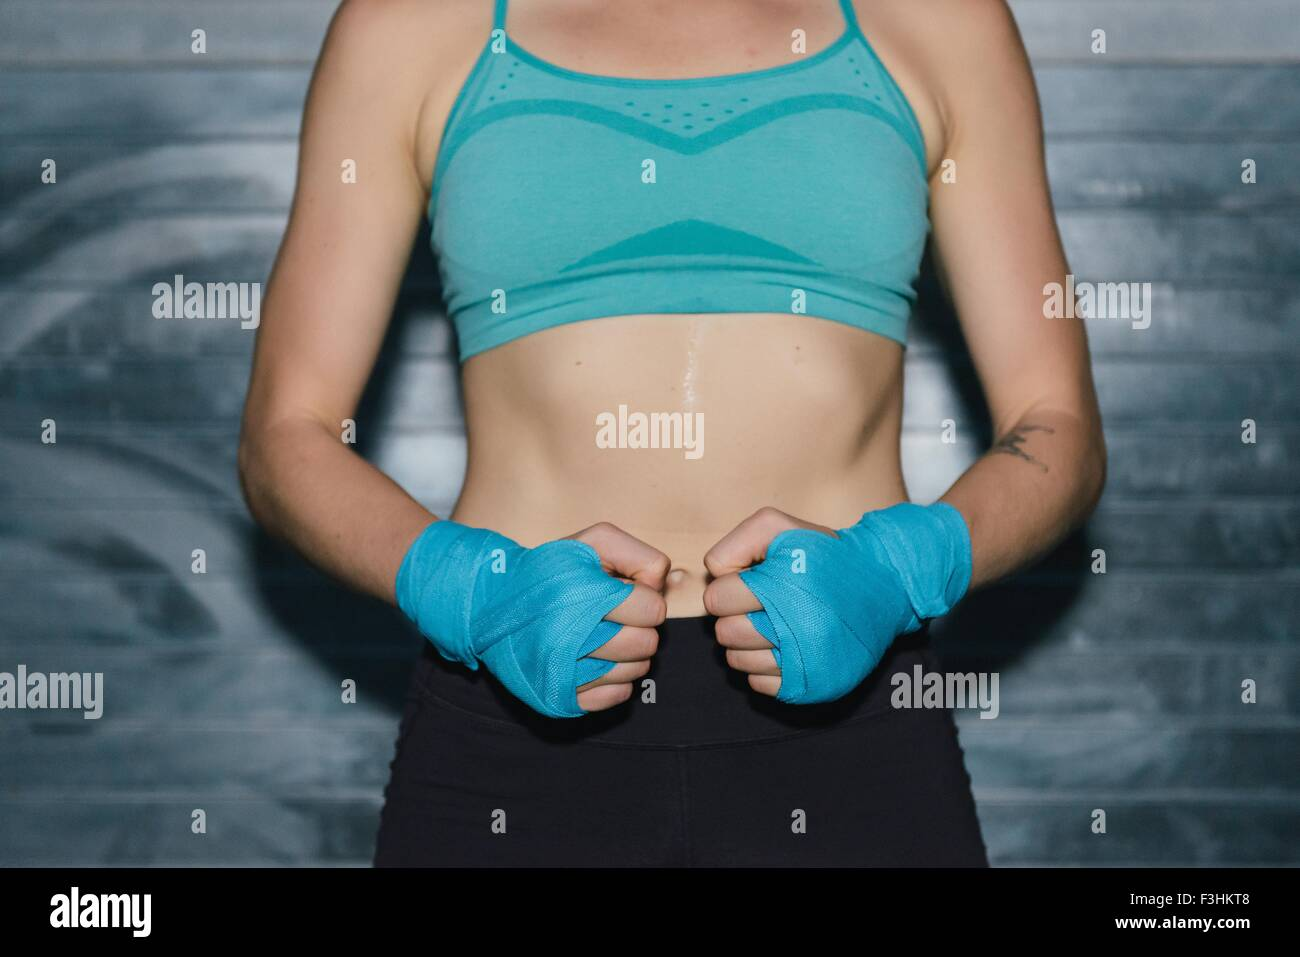 Young woman wearing sports clothing, mid section Stock Photo